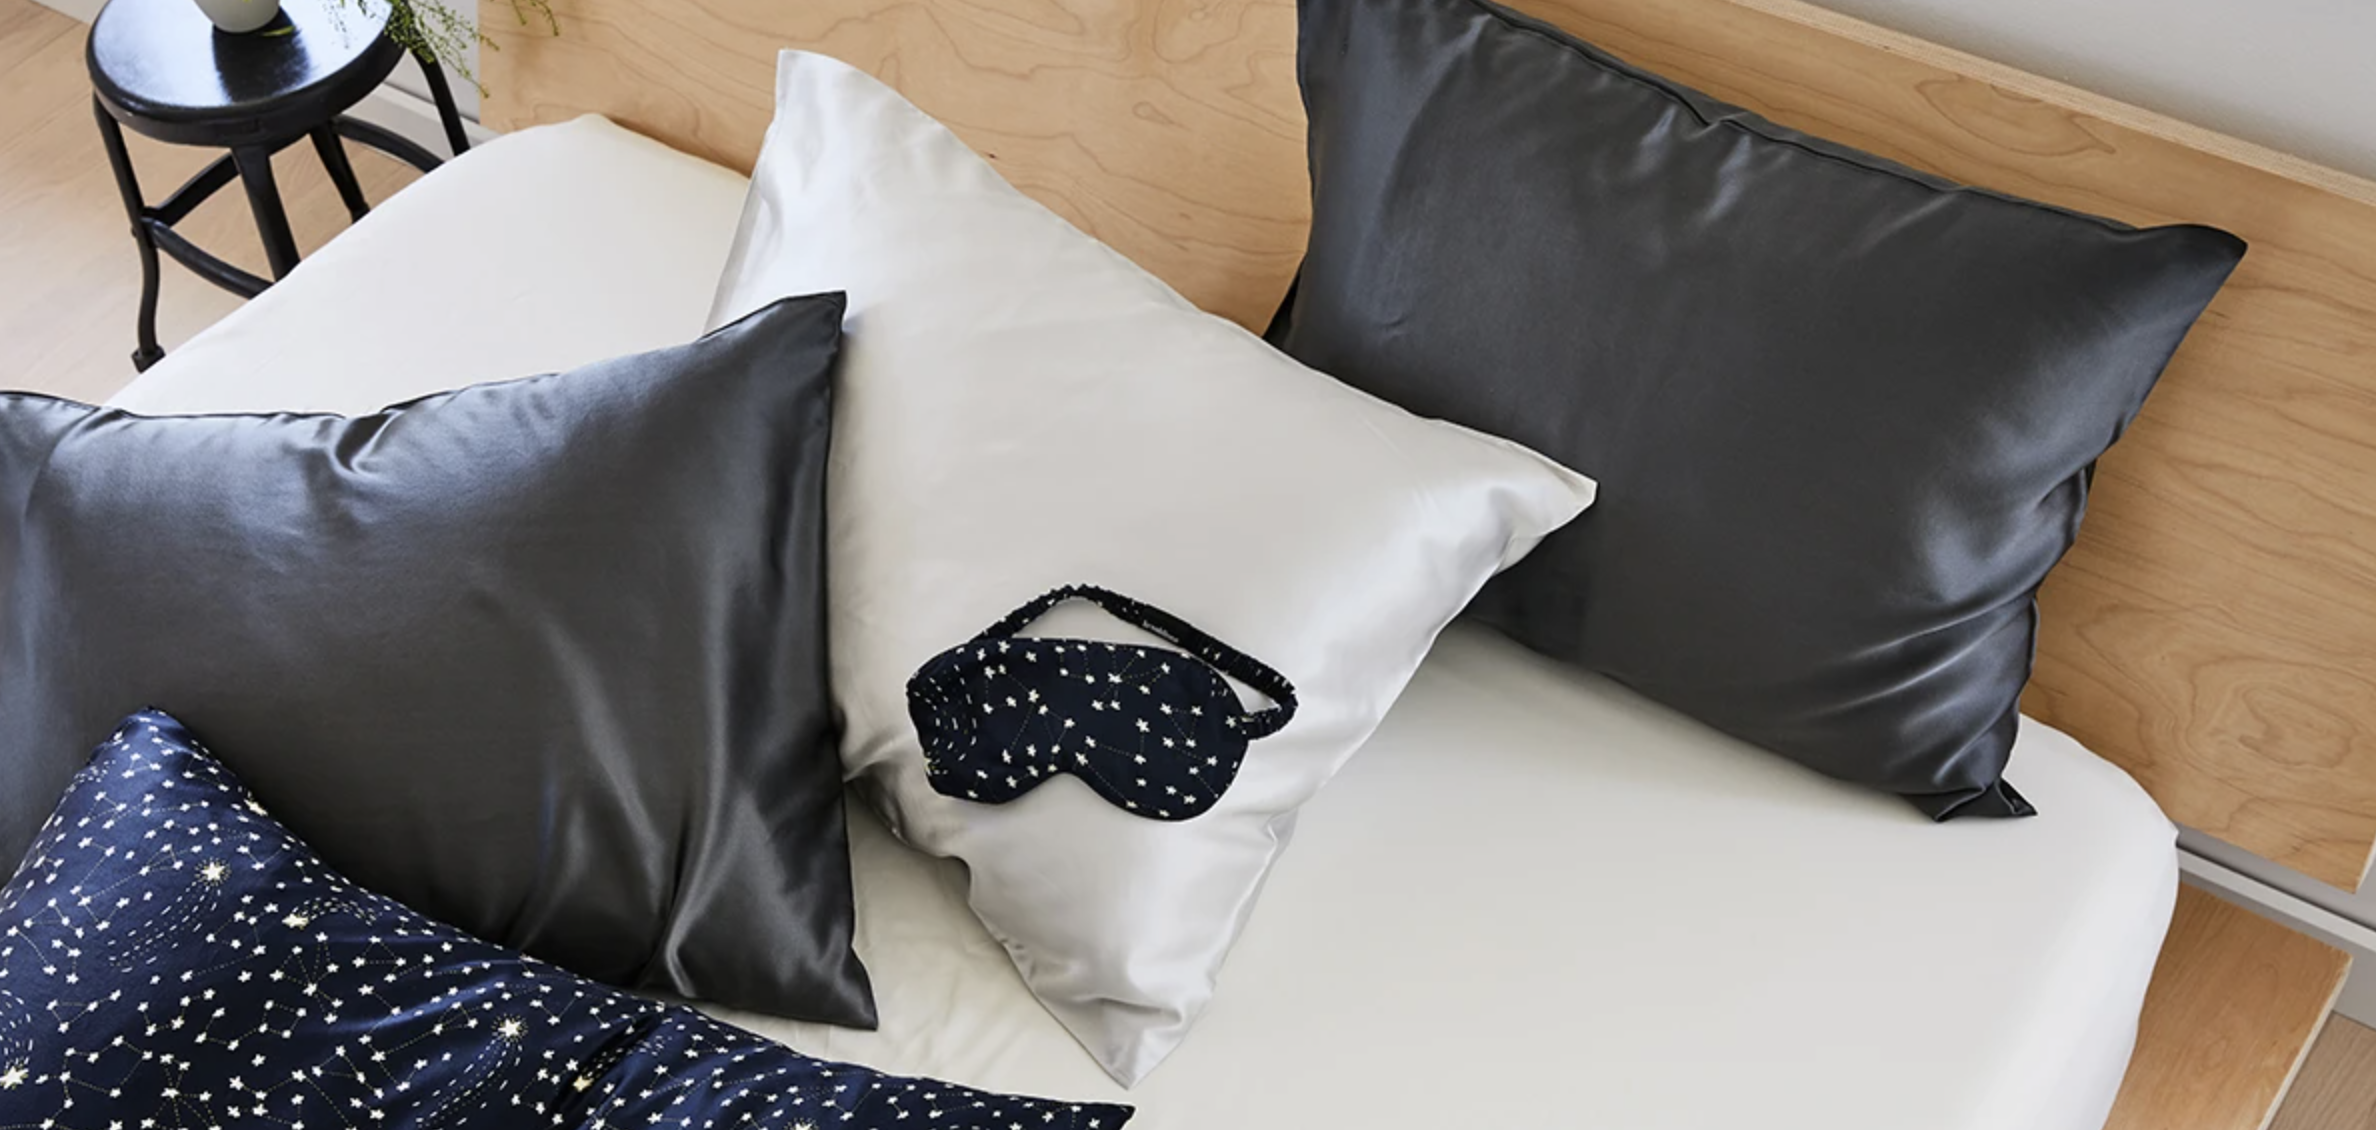 close up of brooklinen sheets in different colors on pillows in bed